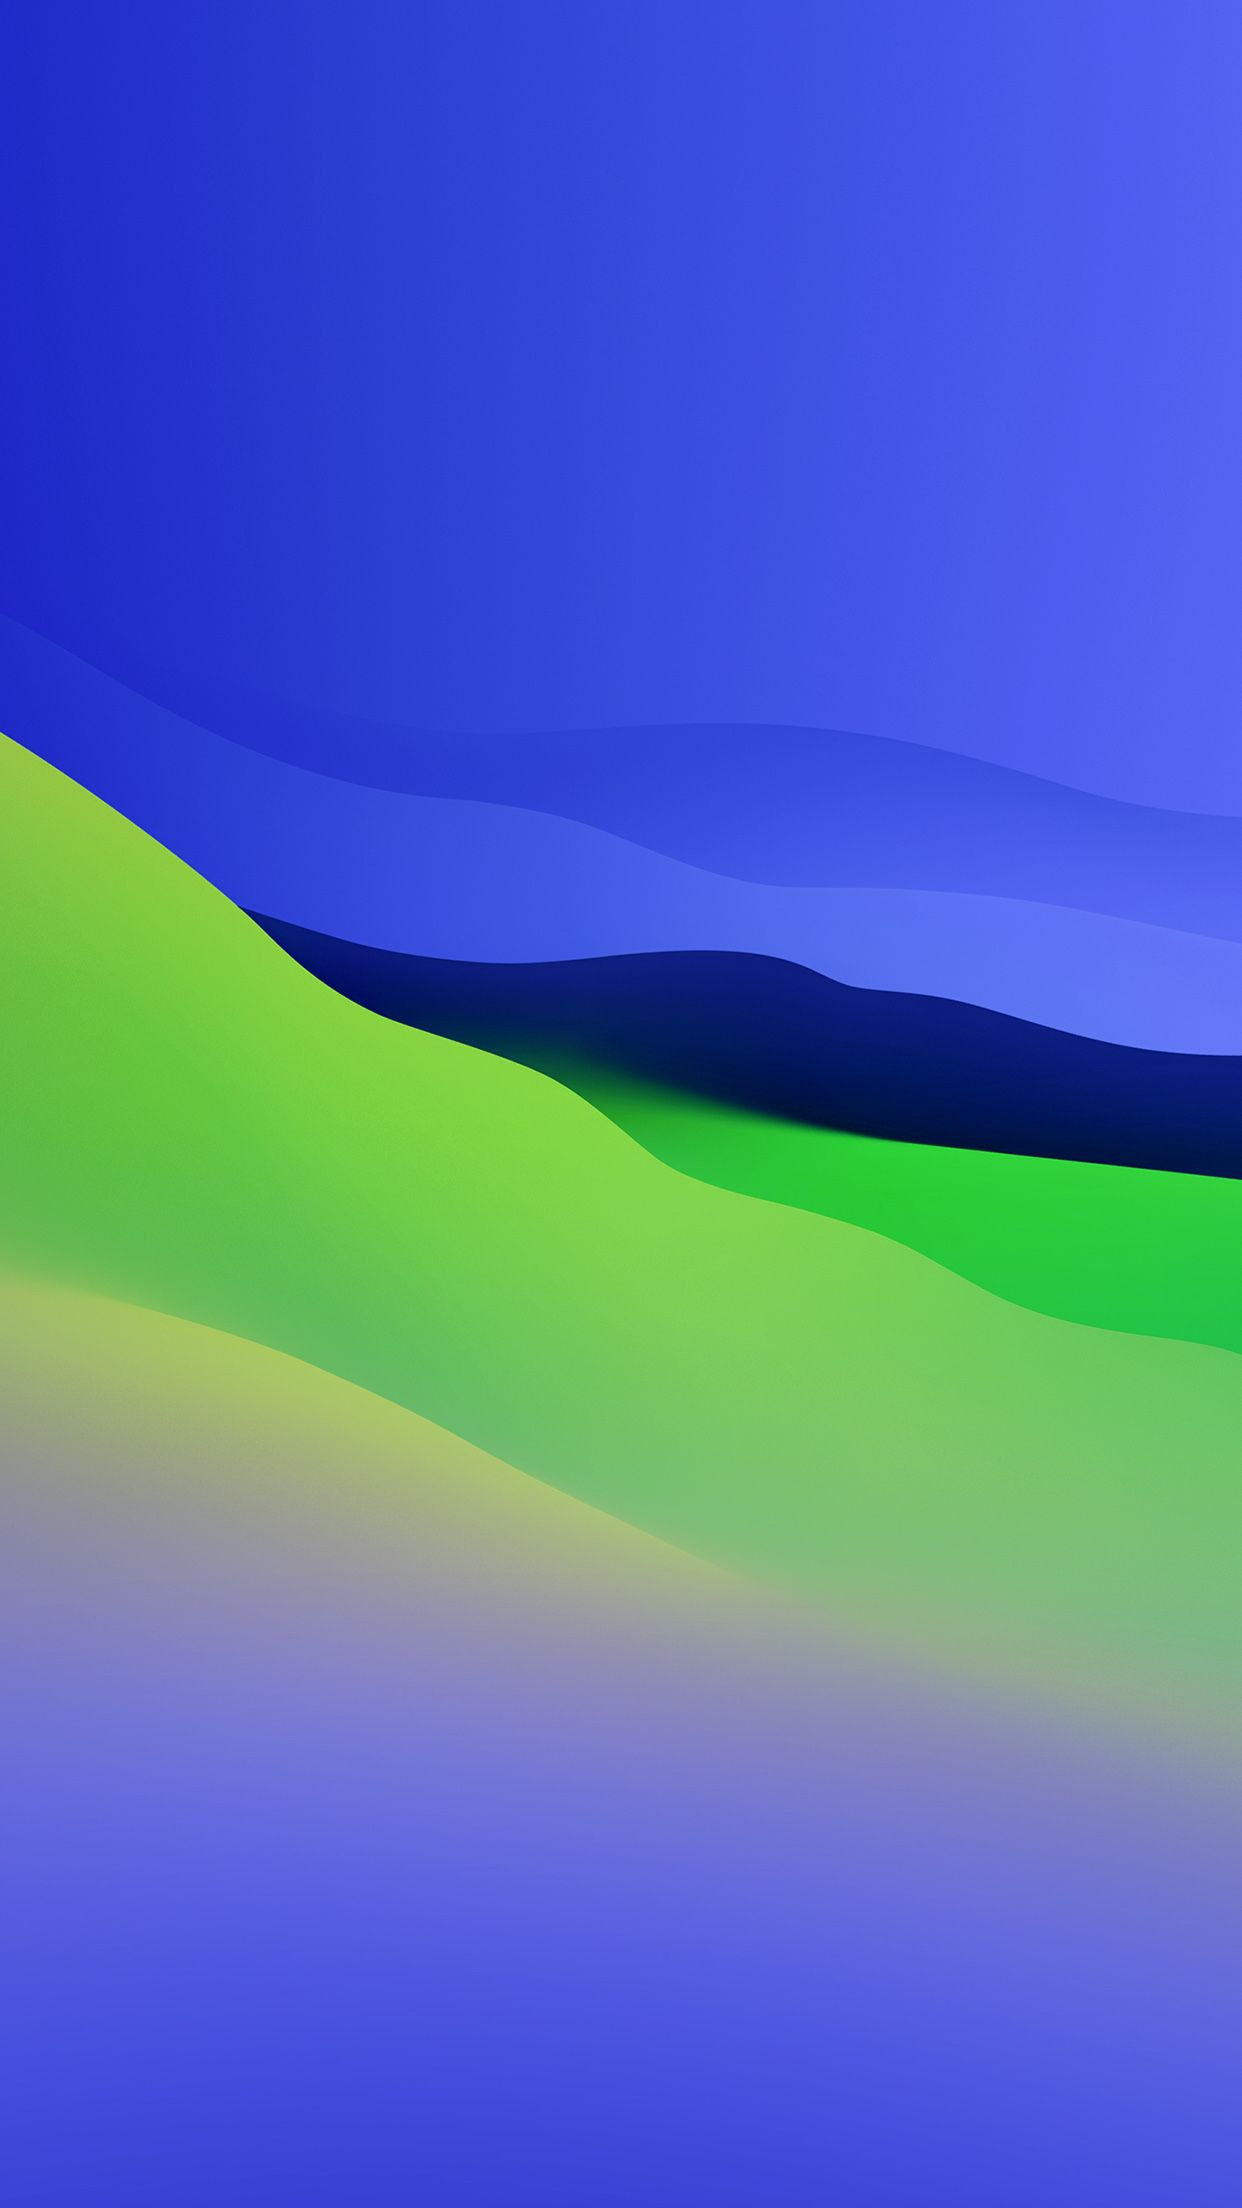 MacOS Big Sur Mod in 21   Iphone wallpaper images, Iphone ...